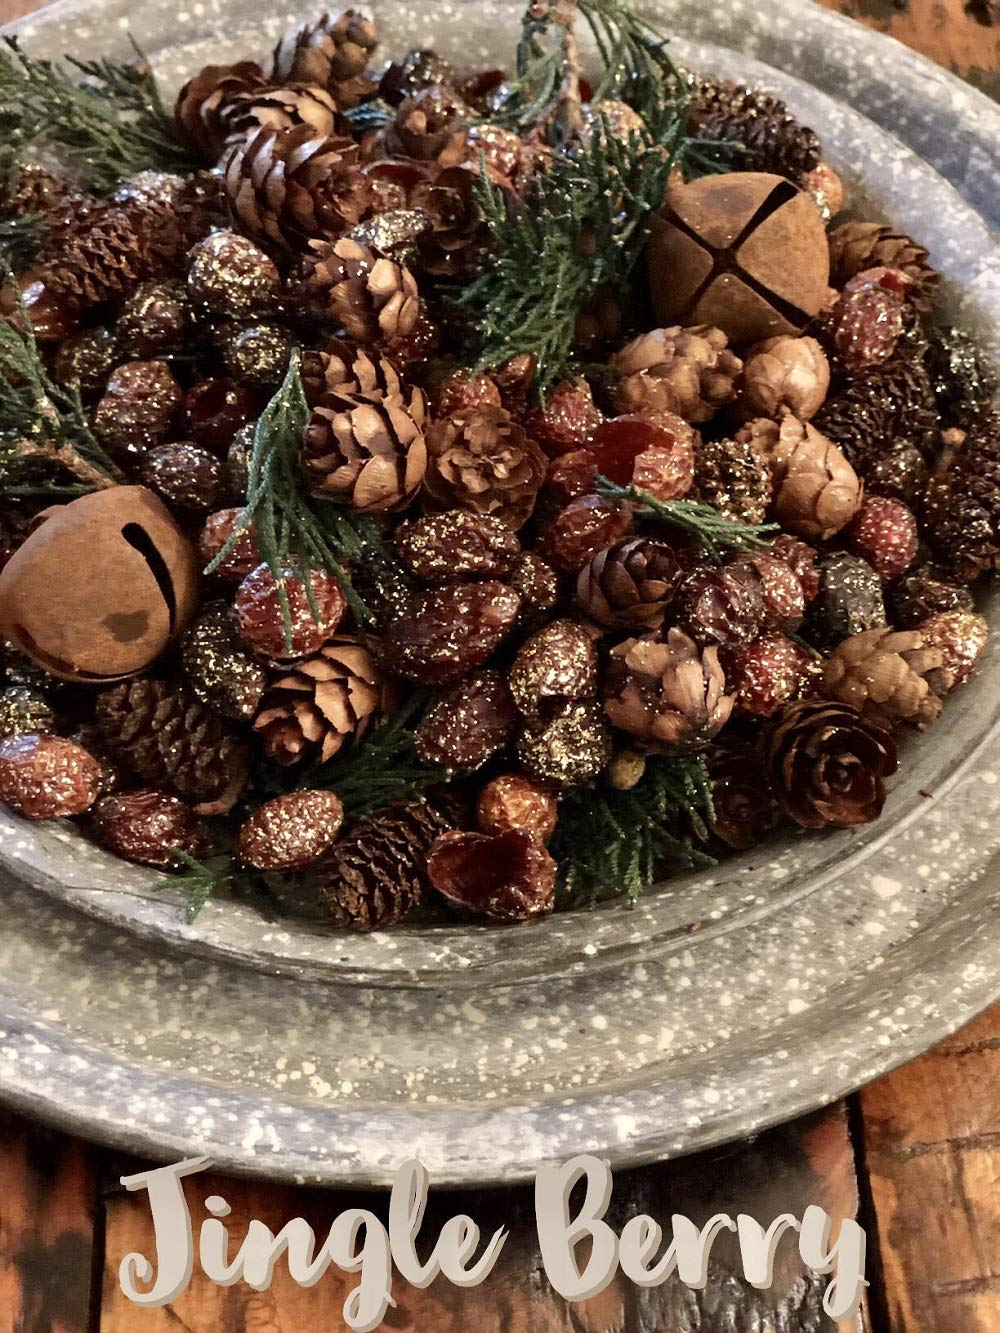 Homestead Studios Jingle Berry Potpourri - Sparkly Holiday Berry Bling with hints of Juniper and Jingle Bells - Fall, Winter Summer, All Year Round by Homestead Studios (Image #1)